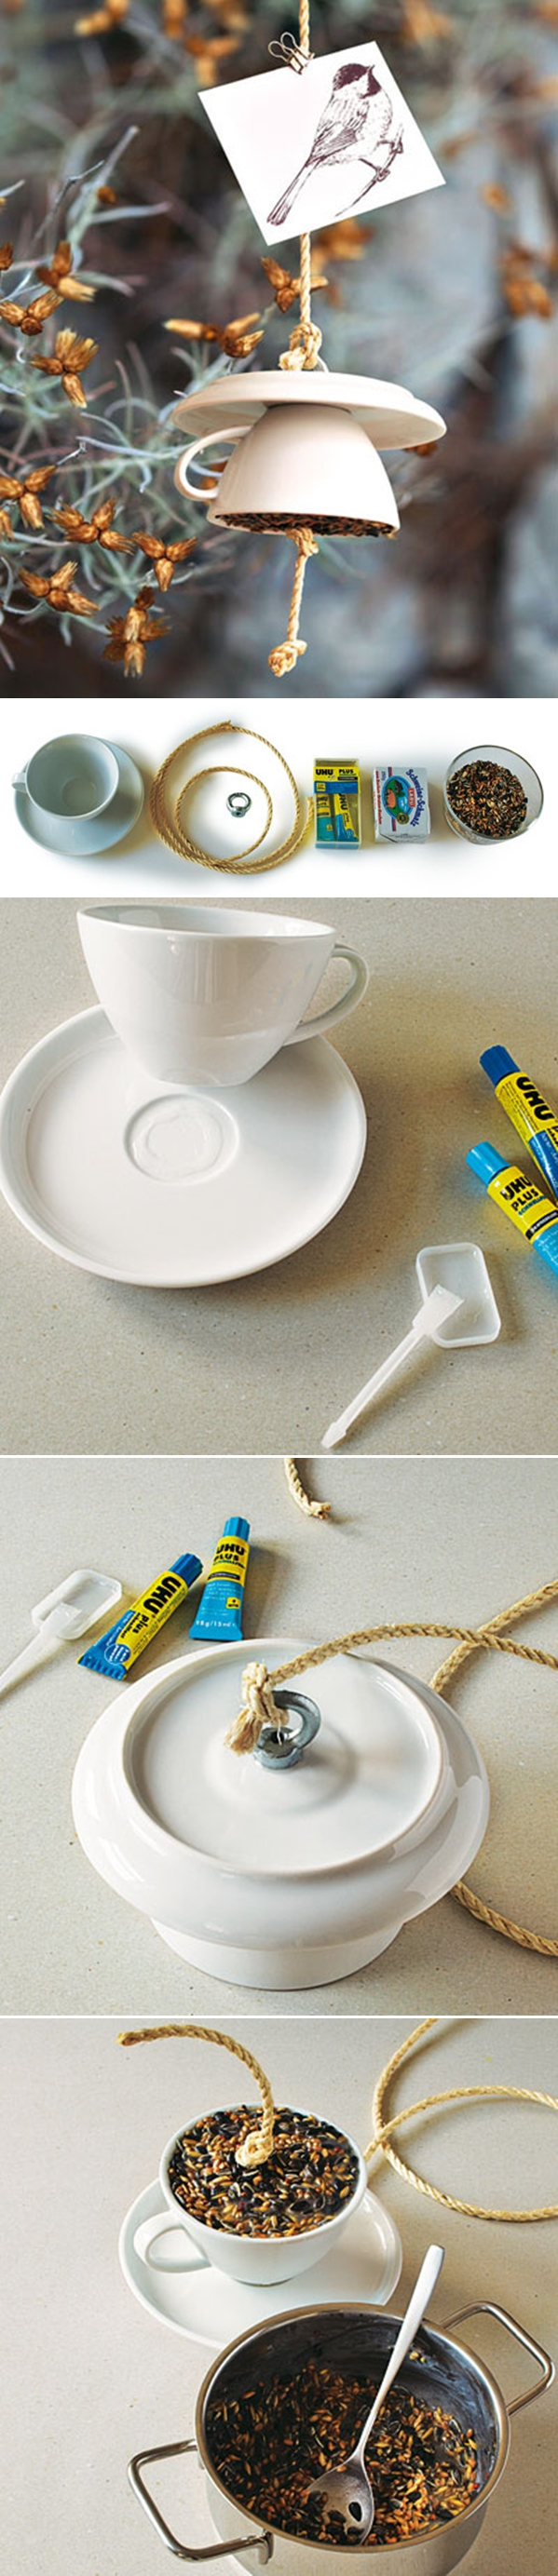 tea cup bird feeder diy home decor ideas step by step